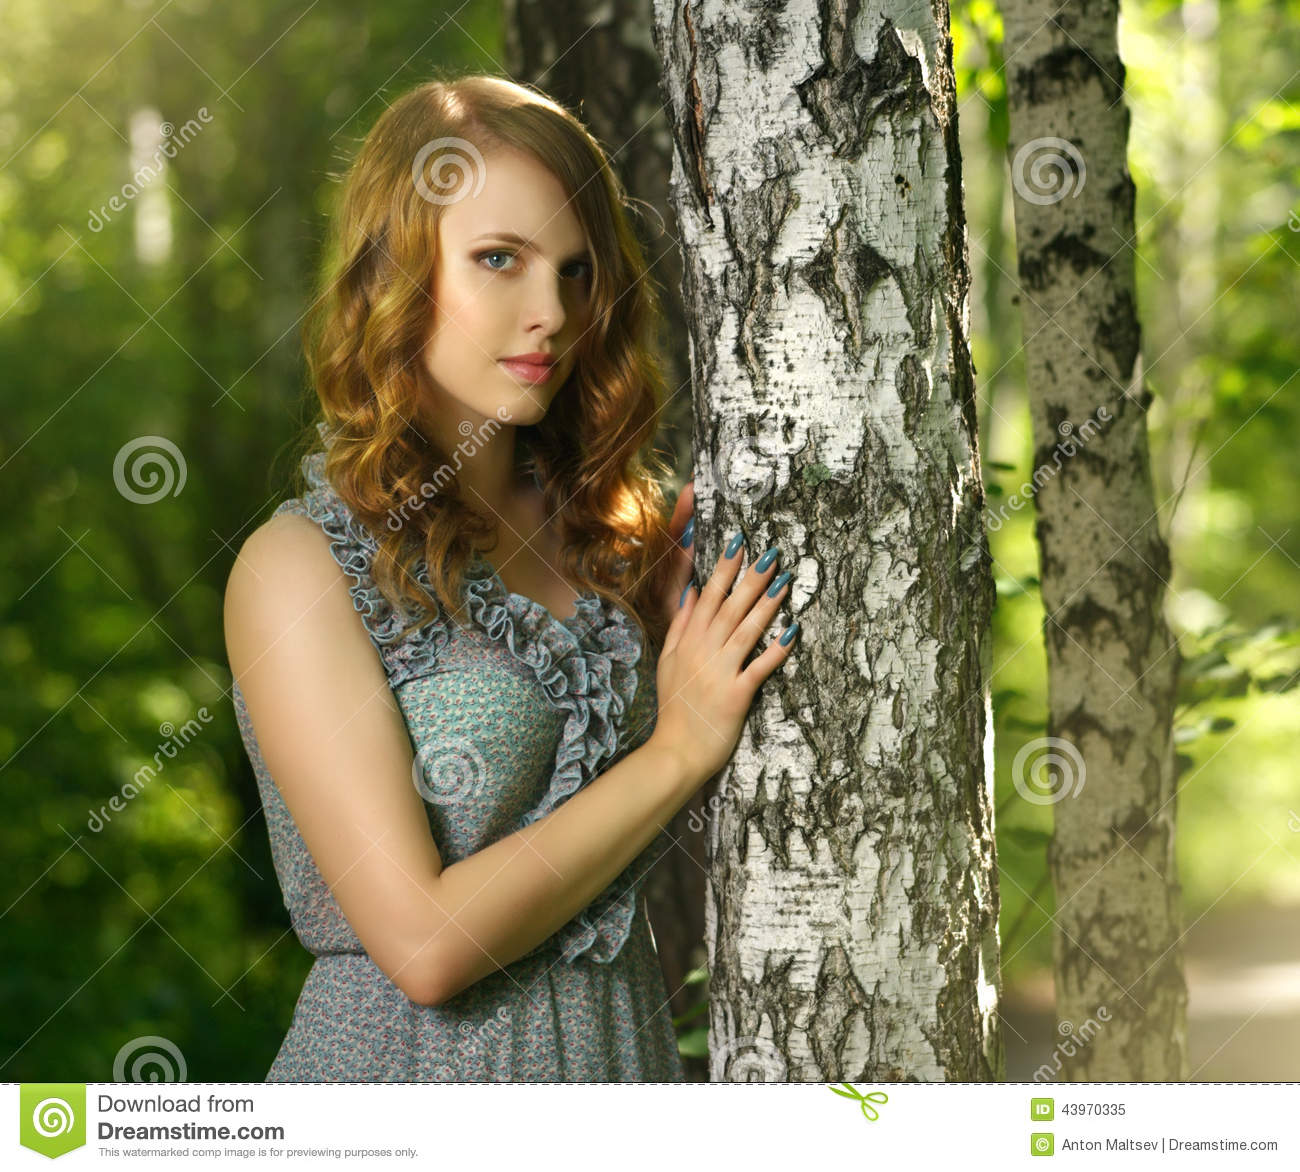 f0c33161d Beautiful Girl Fairy Forest Stock Images - Download 11